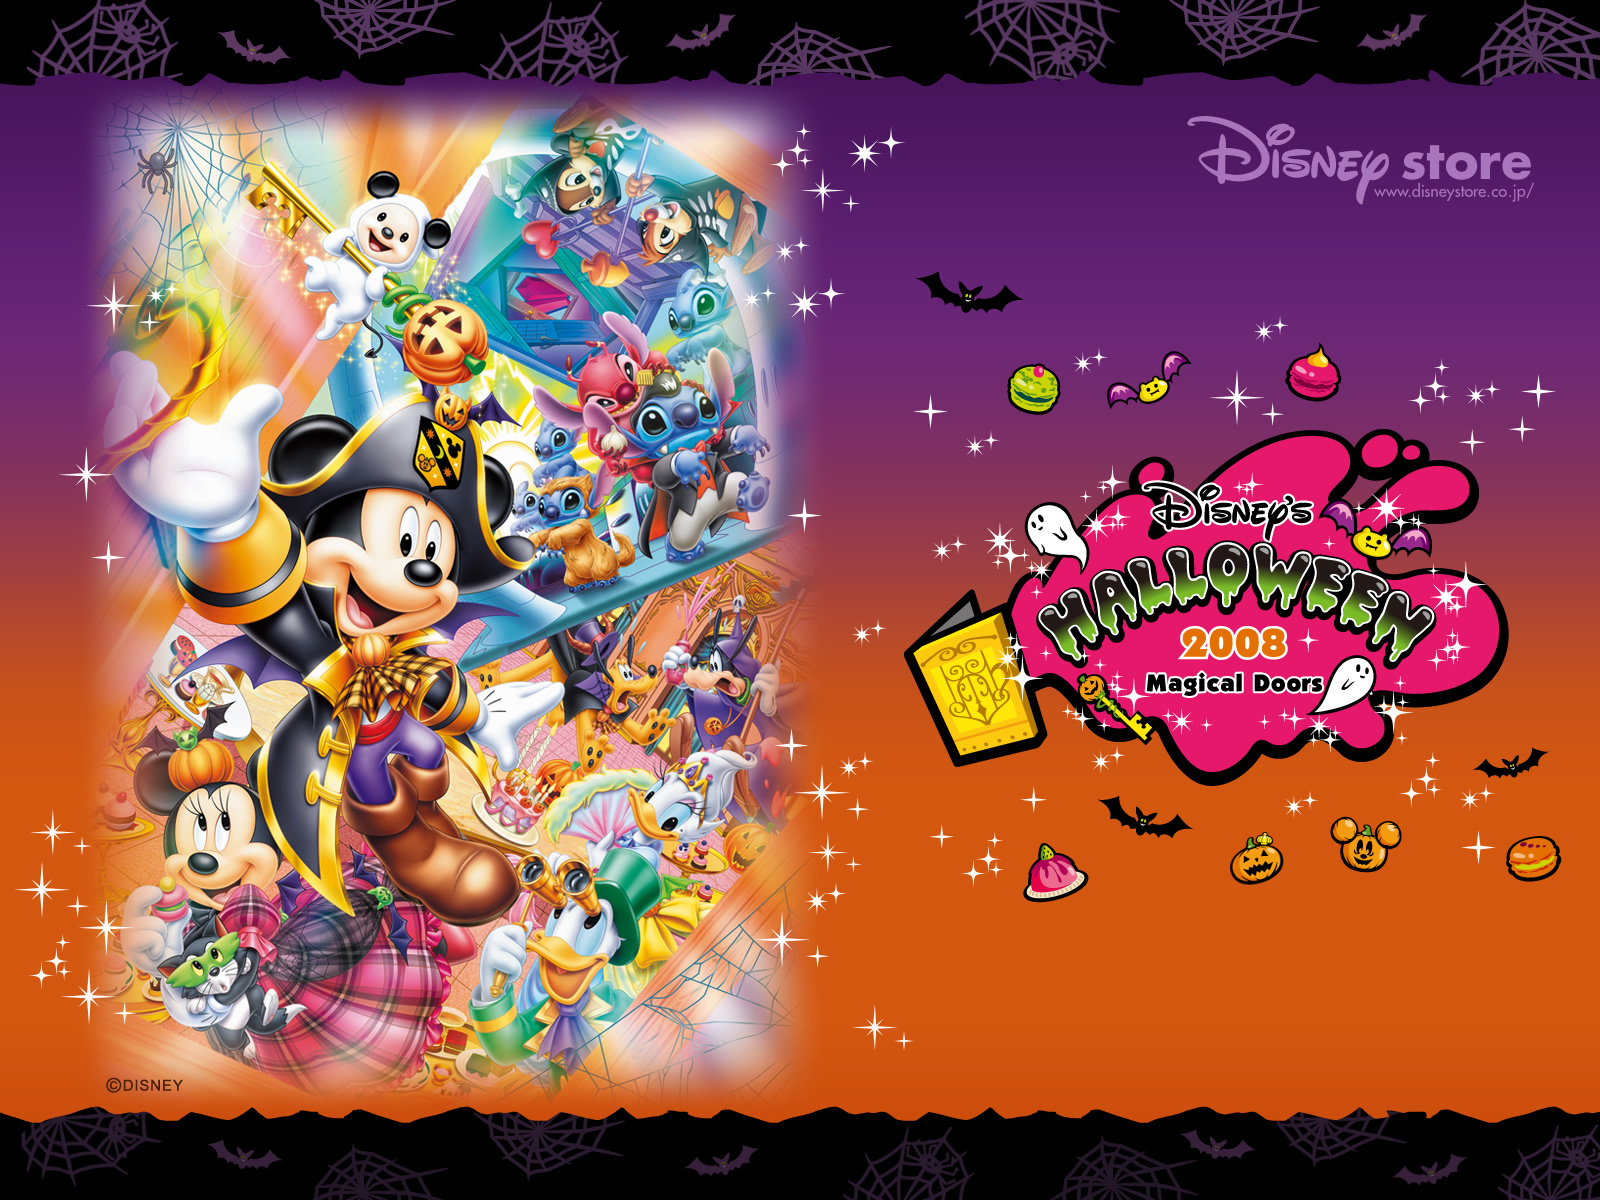 Disney Halloween 2008 Wallpaper disney 2428566 1600 1200jpg 1600x1200